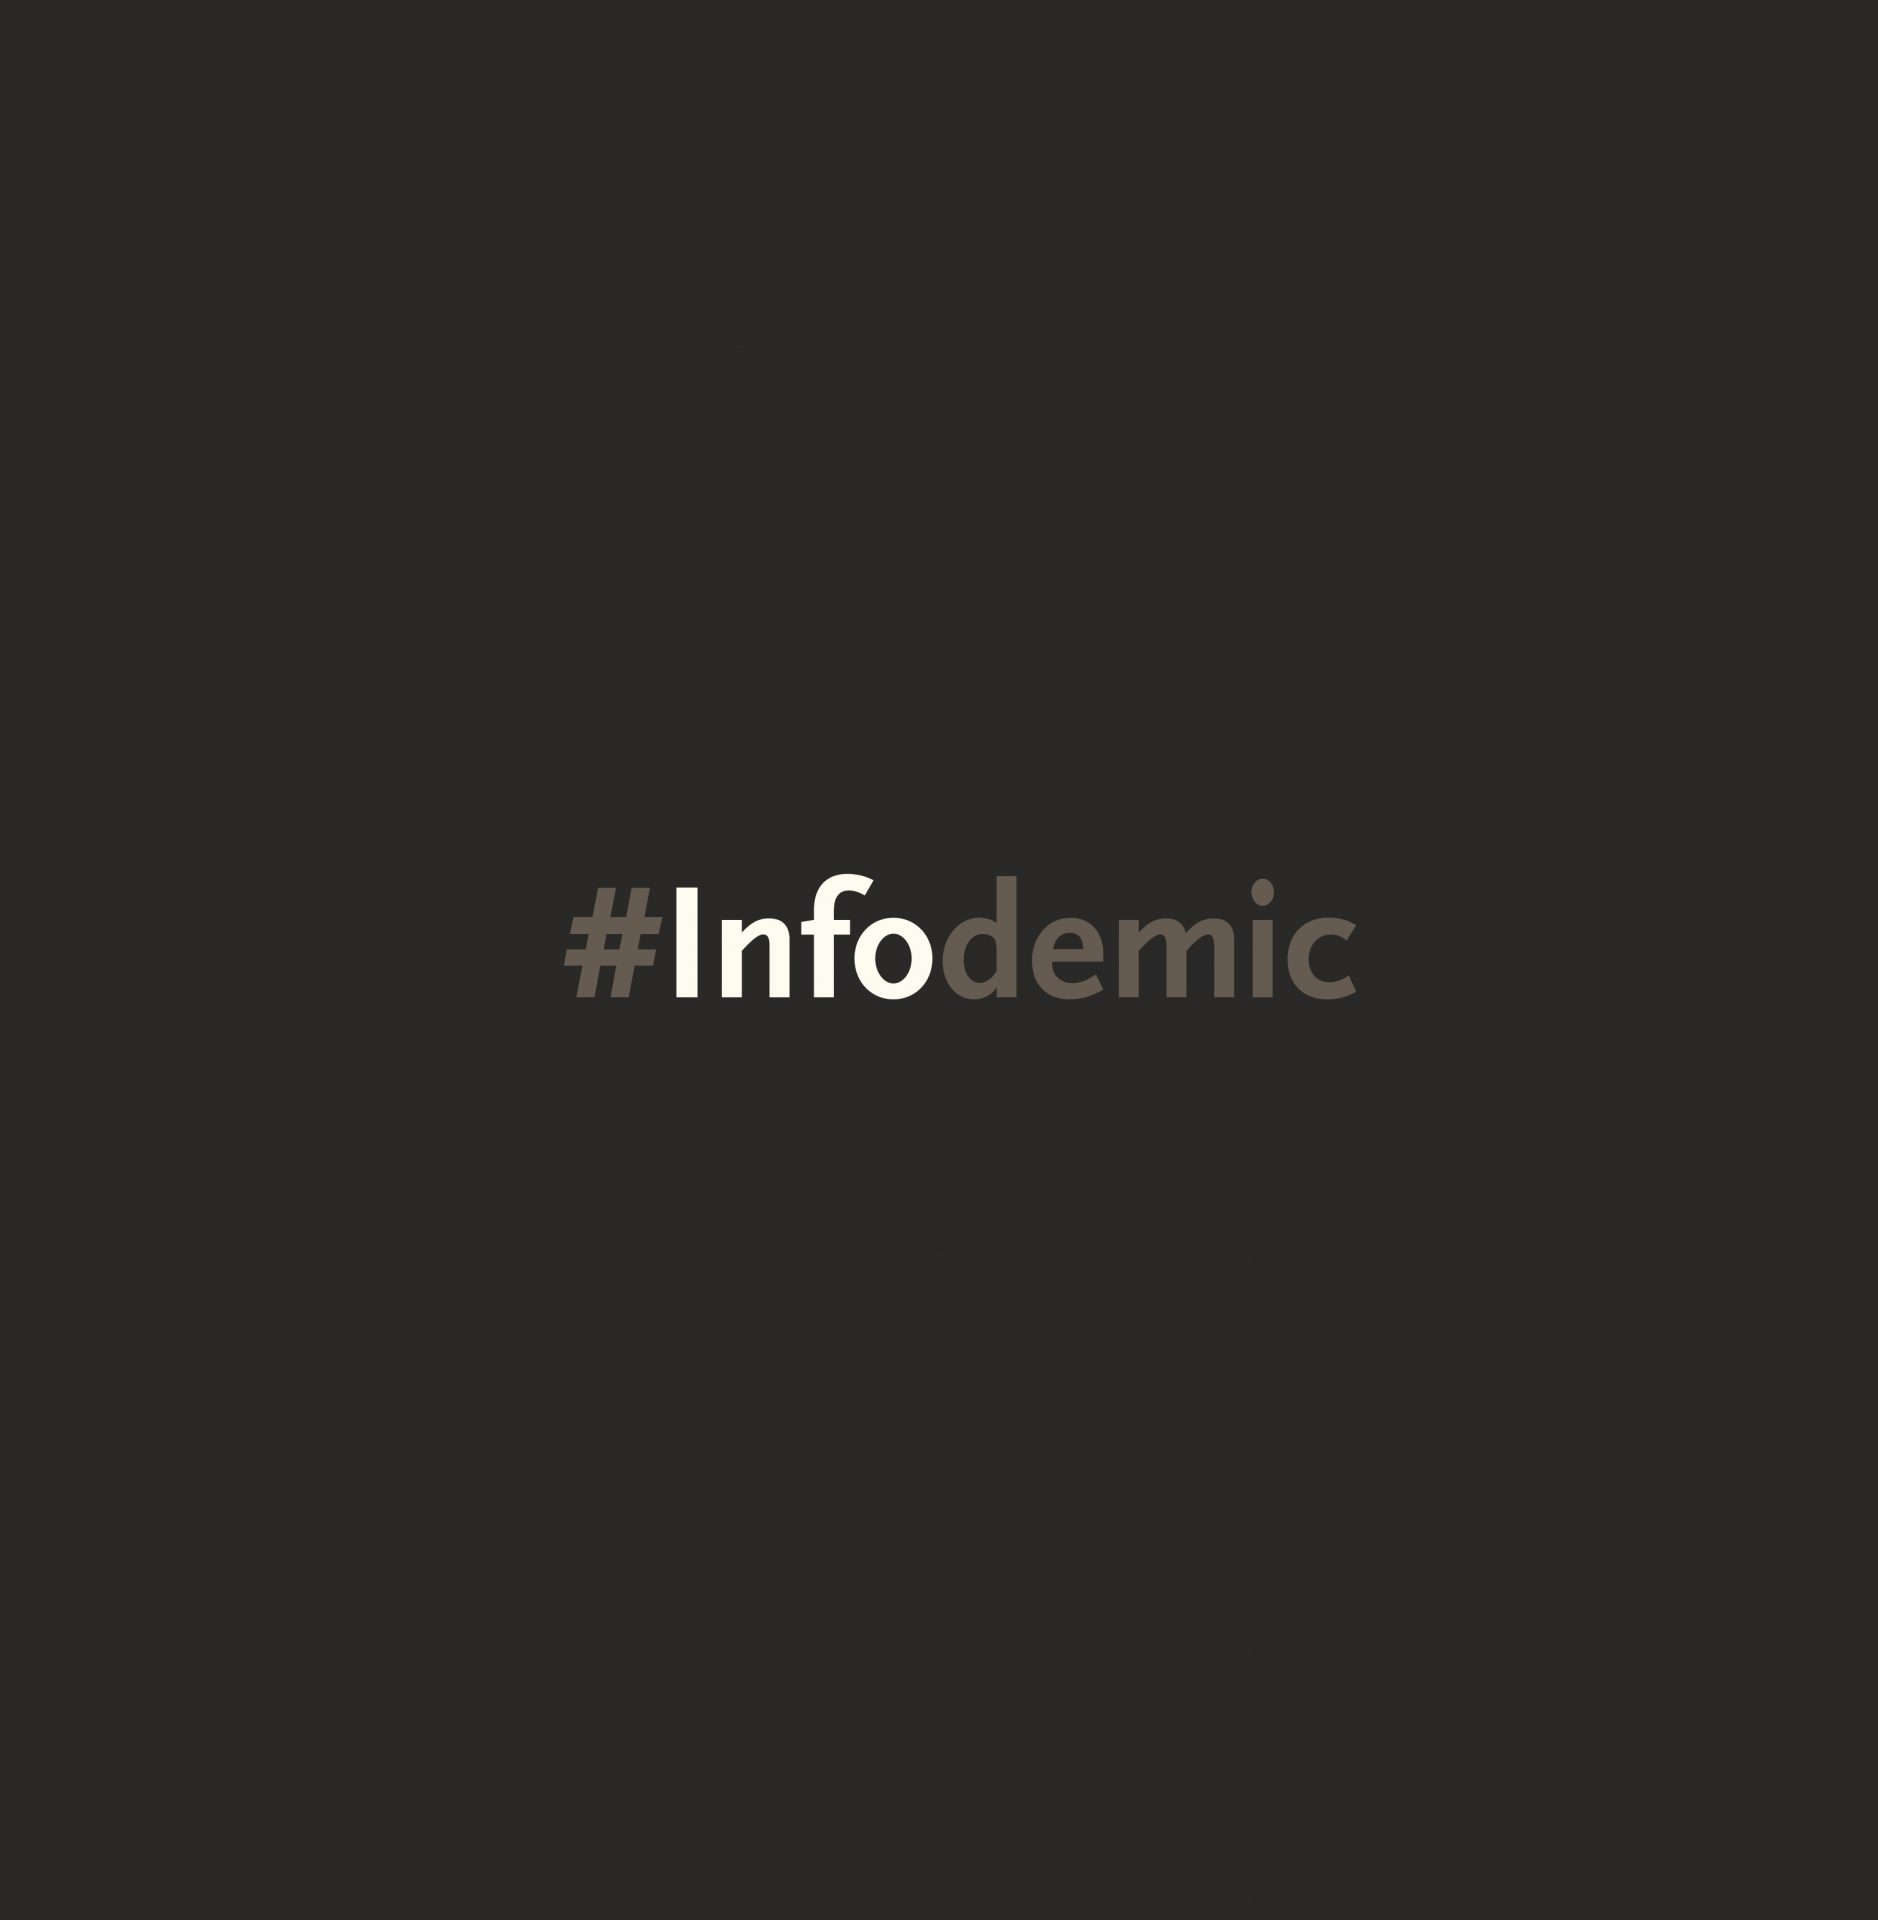 Infodemic – Exhibition by Sean Caulfield & Sue Colberg